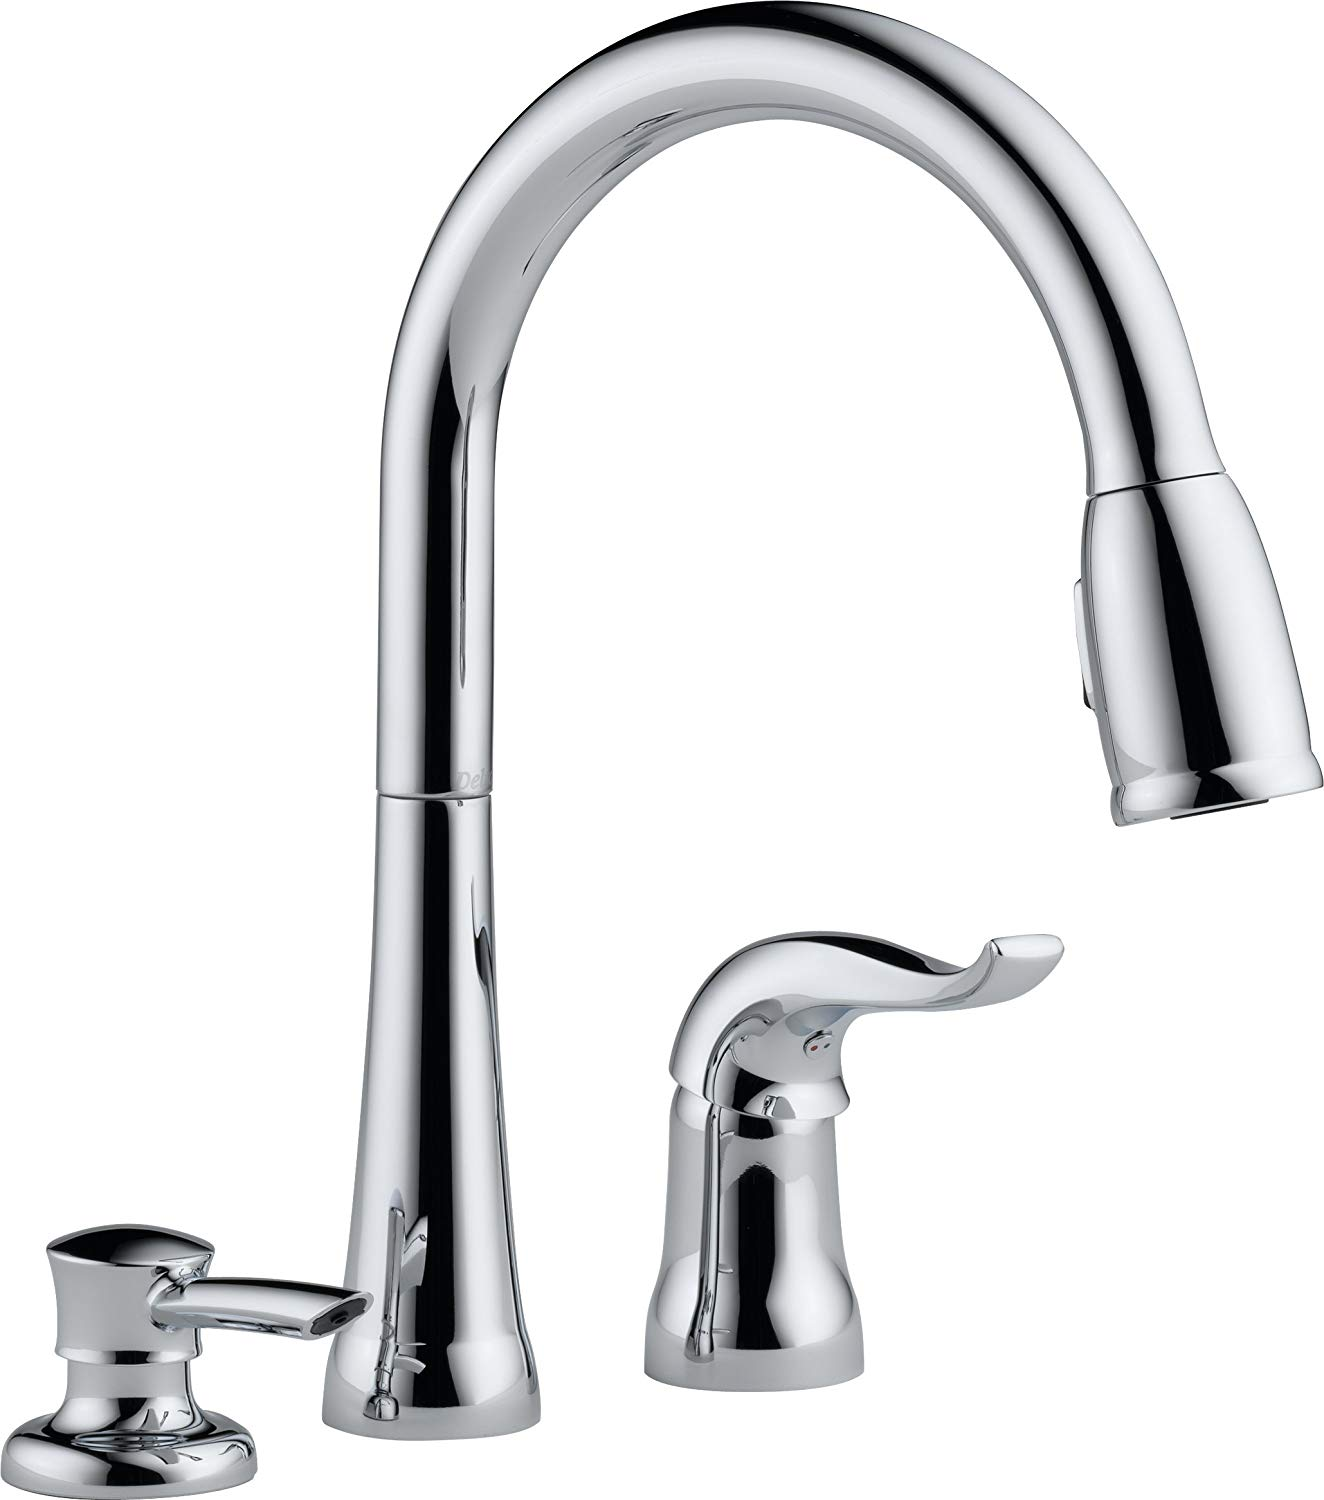 3 Hole Pull Down Kitchen Faucet